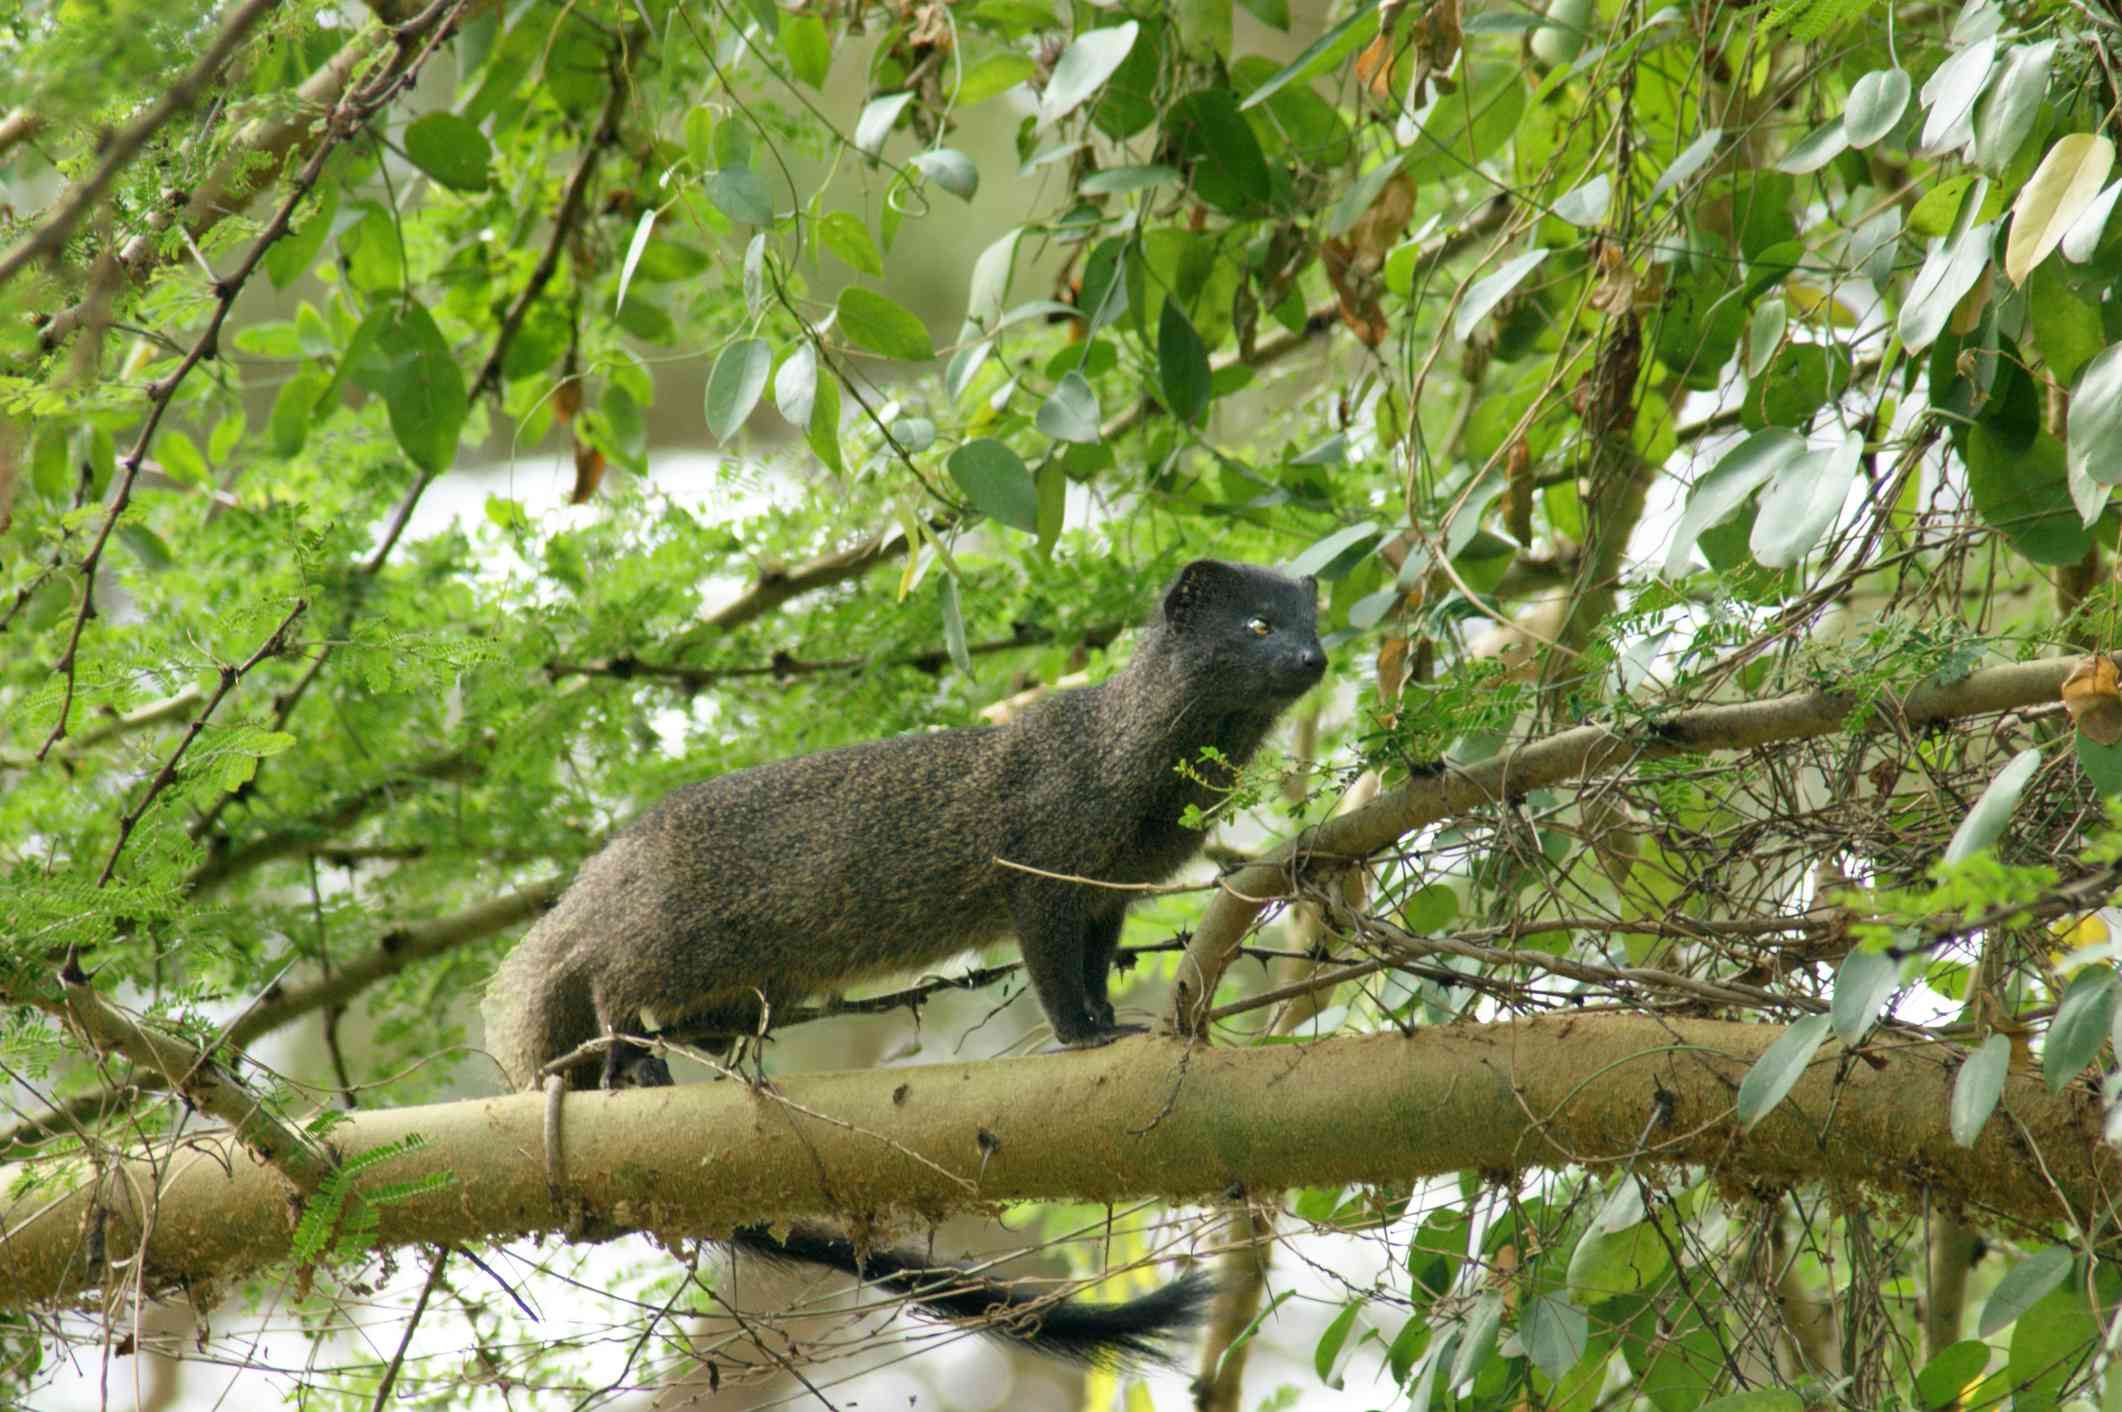 marsh mongoose on a branch near a river